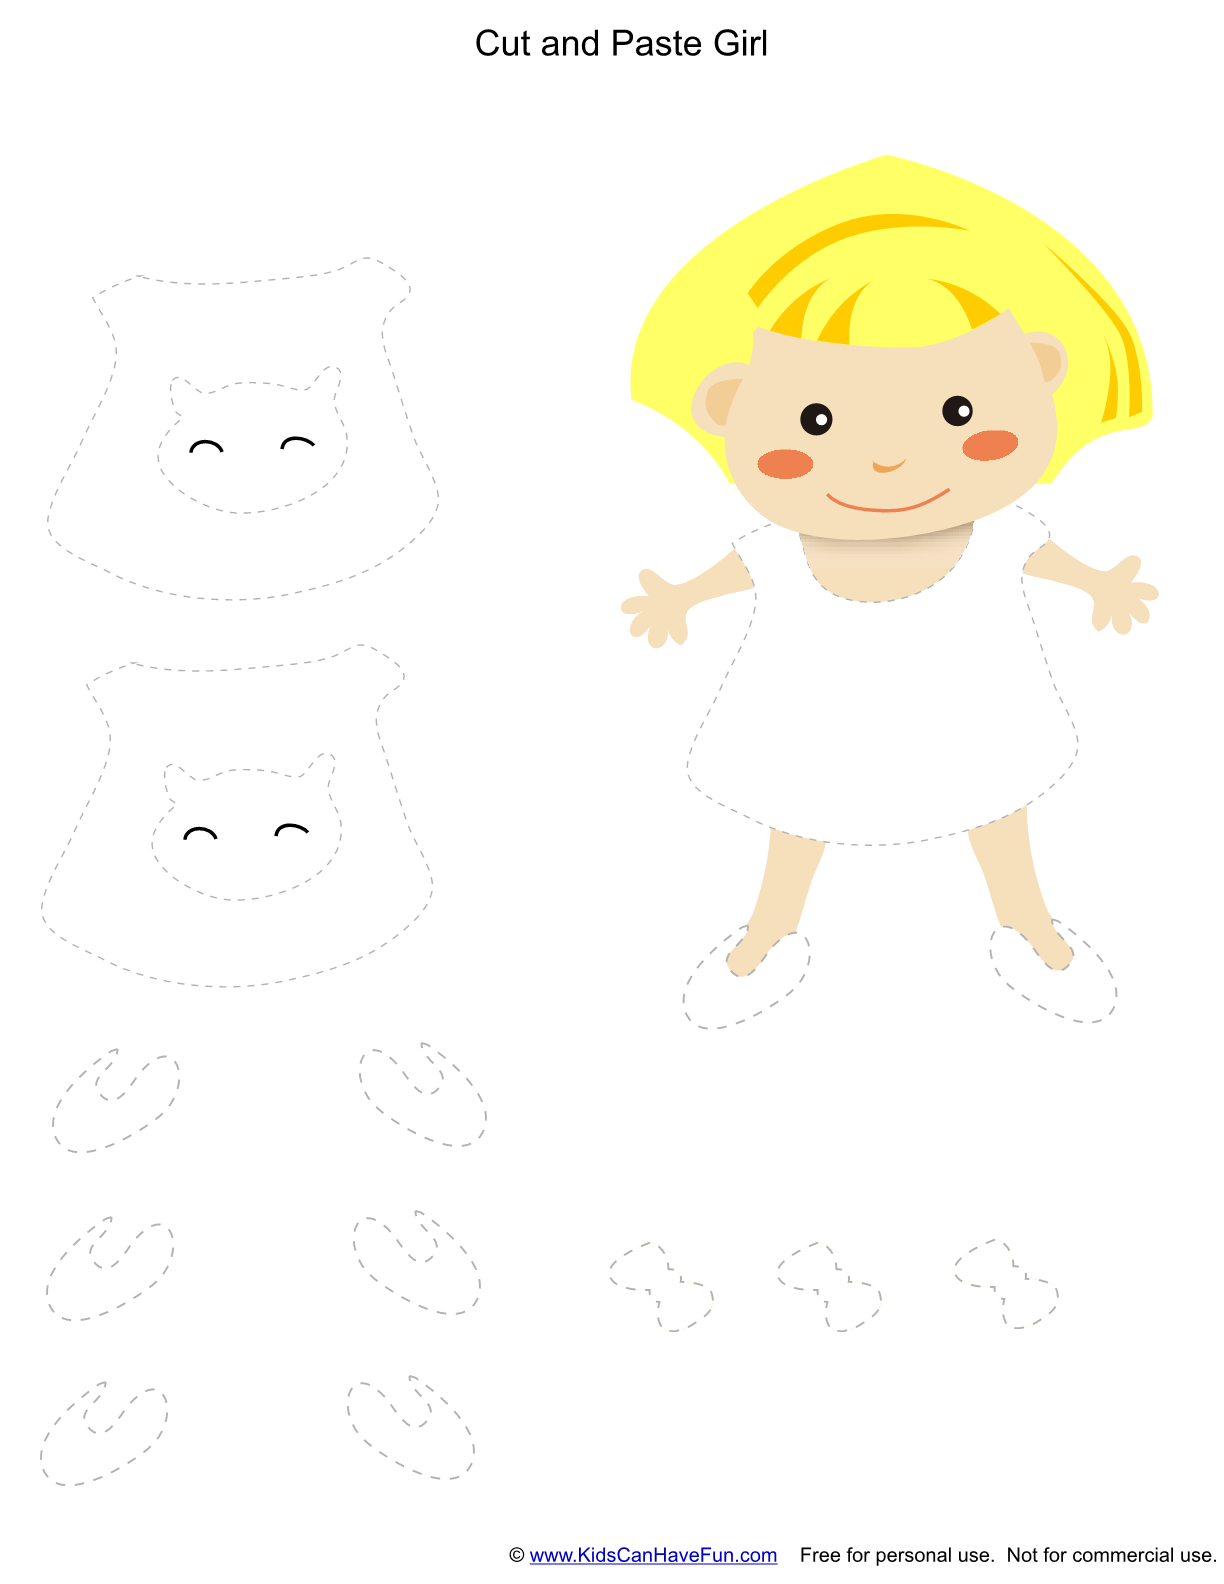 Pin On Cut And Paste Worksheets Activities For Preschool